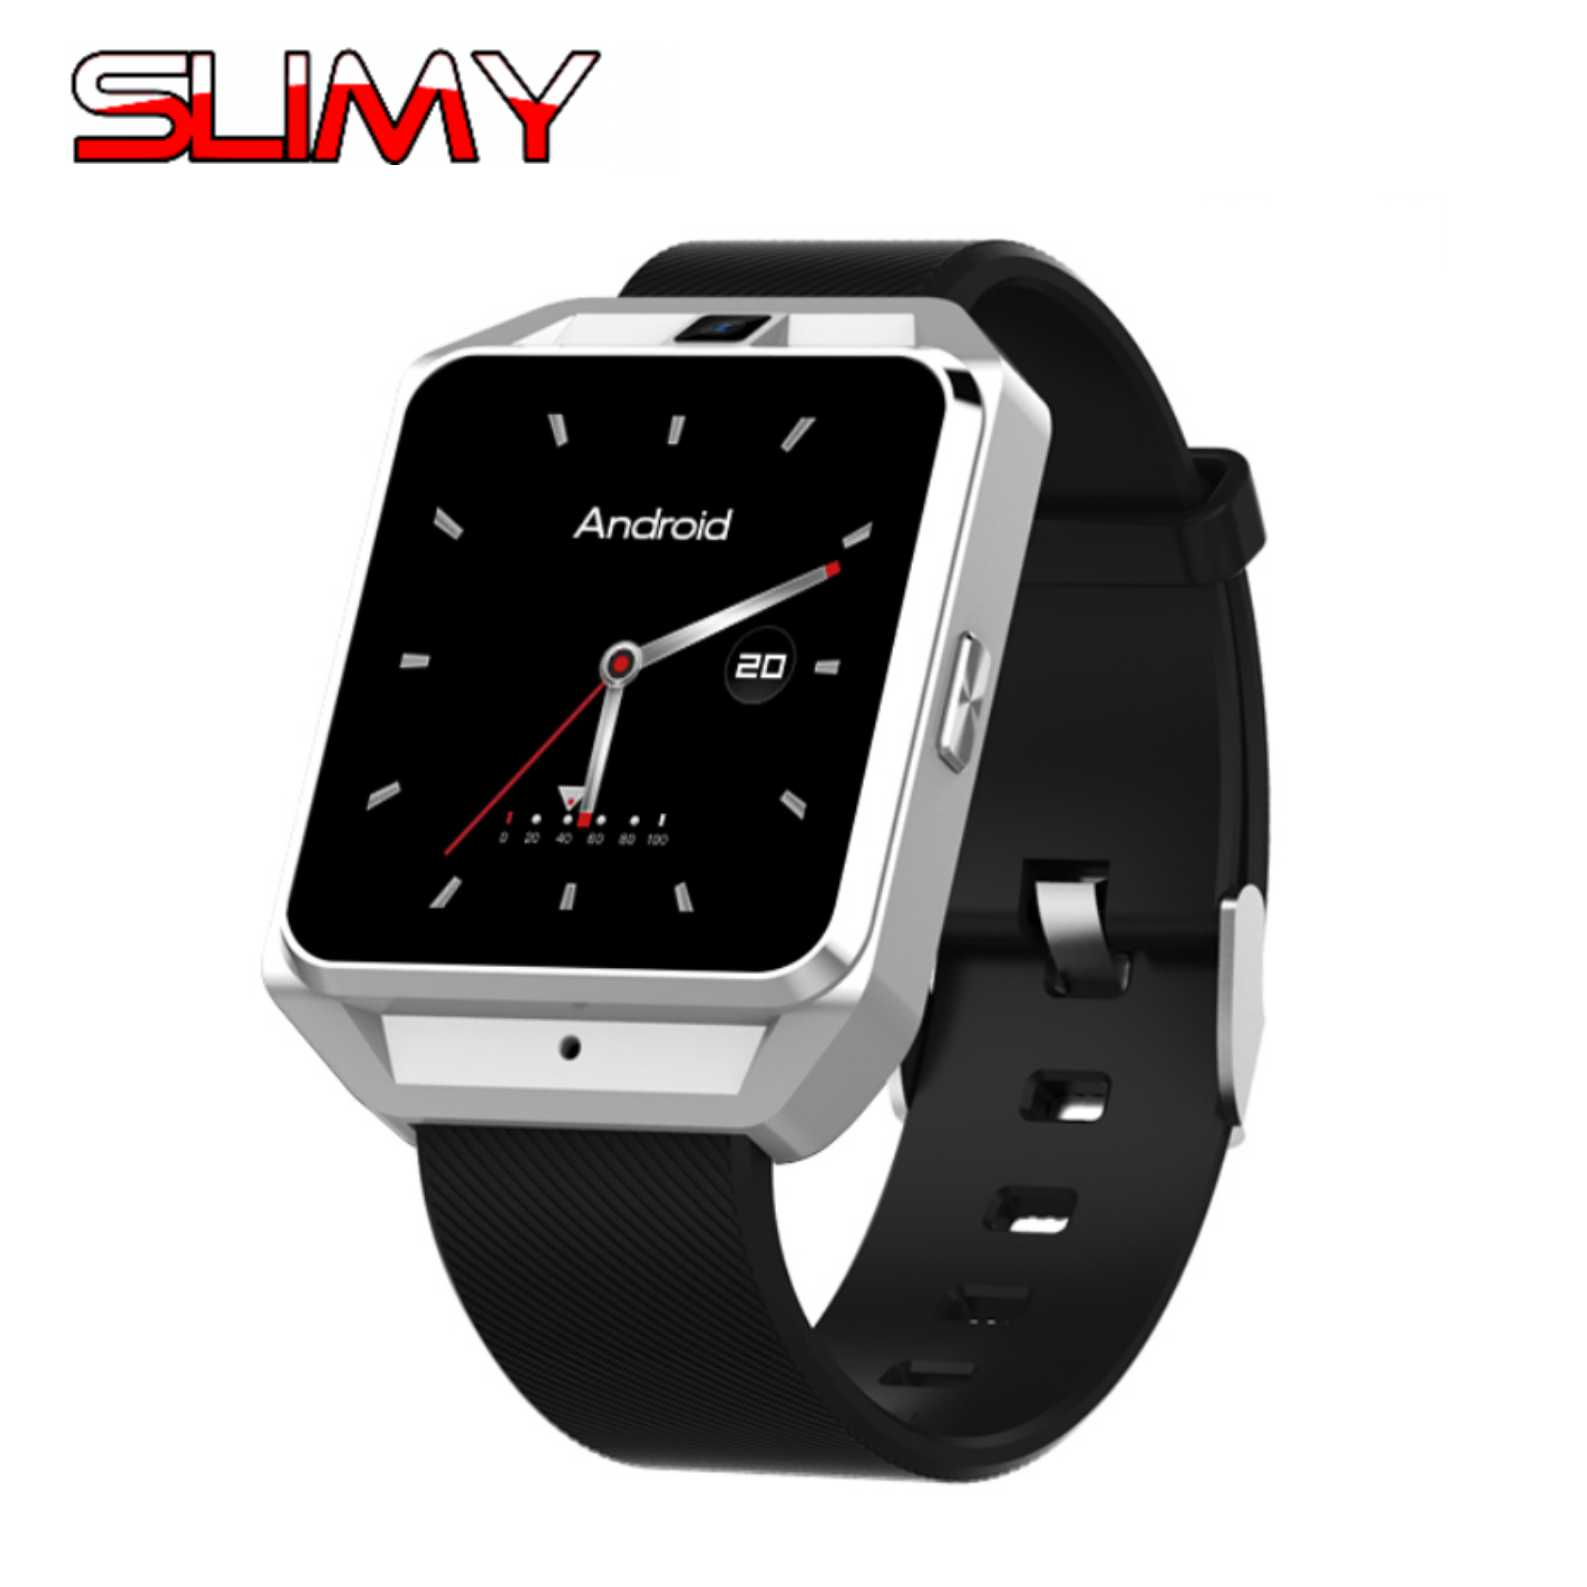 Slimy 4G Smart Watch H5 M5 with Android 6.0 OS WCDMA WiFi Bluetooth SmartWatch GPS Heart Rate Monitor First 4G Smartwatch World smartch 3g s1 smart watch phone 521mb 4g bluetooth4 0 android 5 1 smartwatch with wifi gps google map heart rate monitor wearabl